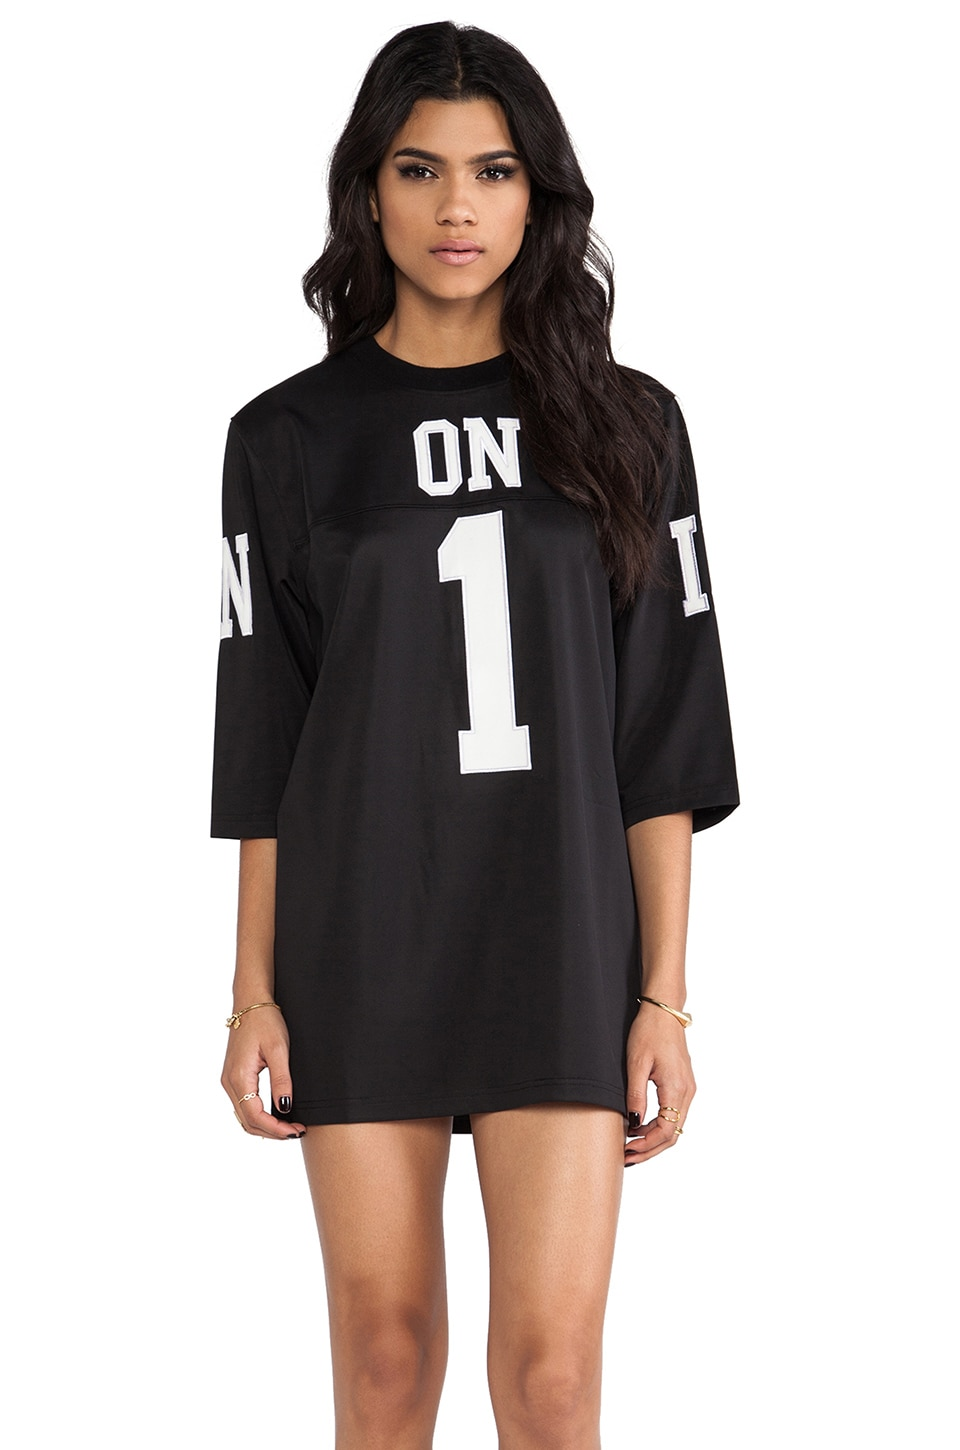 UNIF ON1 Jersey Dress in Black